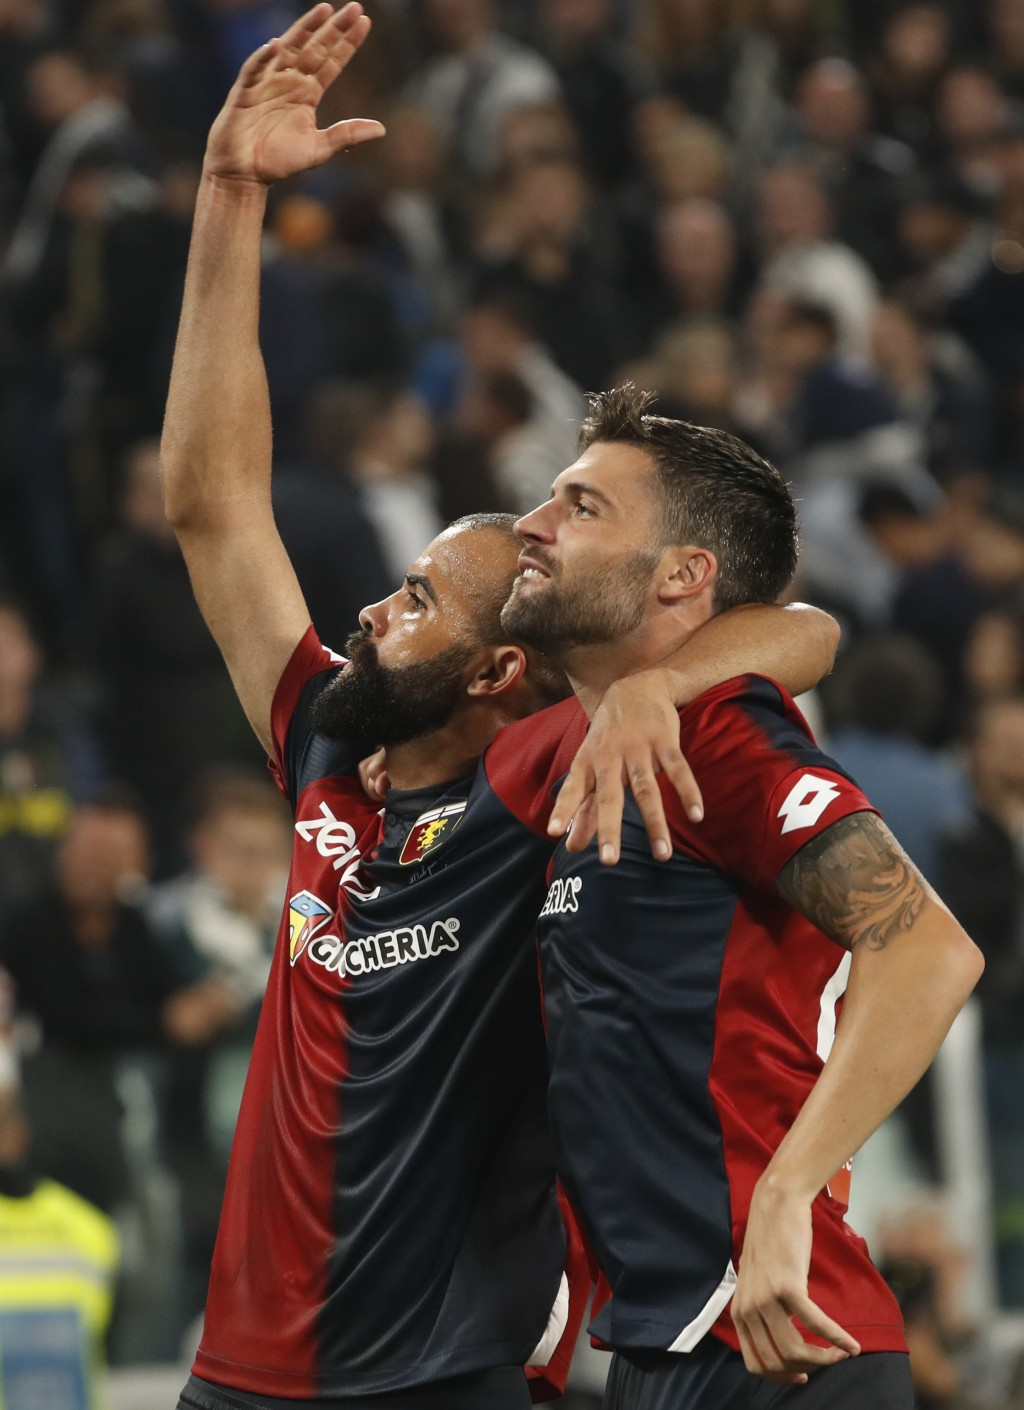 Genoa's Daniel Bessa, right, who scored the equalizer, and Genoa's Sandro celebrate at the end of an Italian Serie A soccer match between Juventus and...